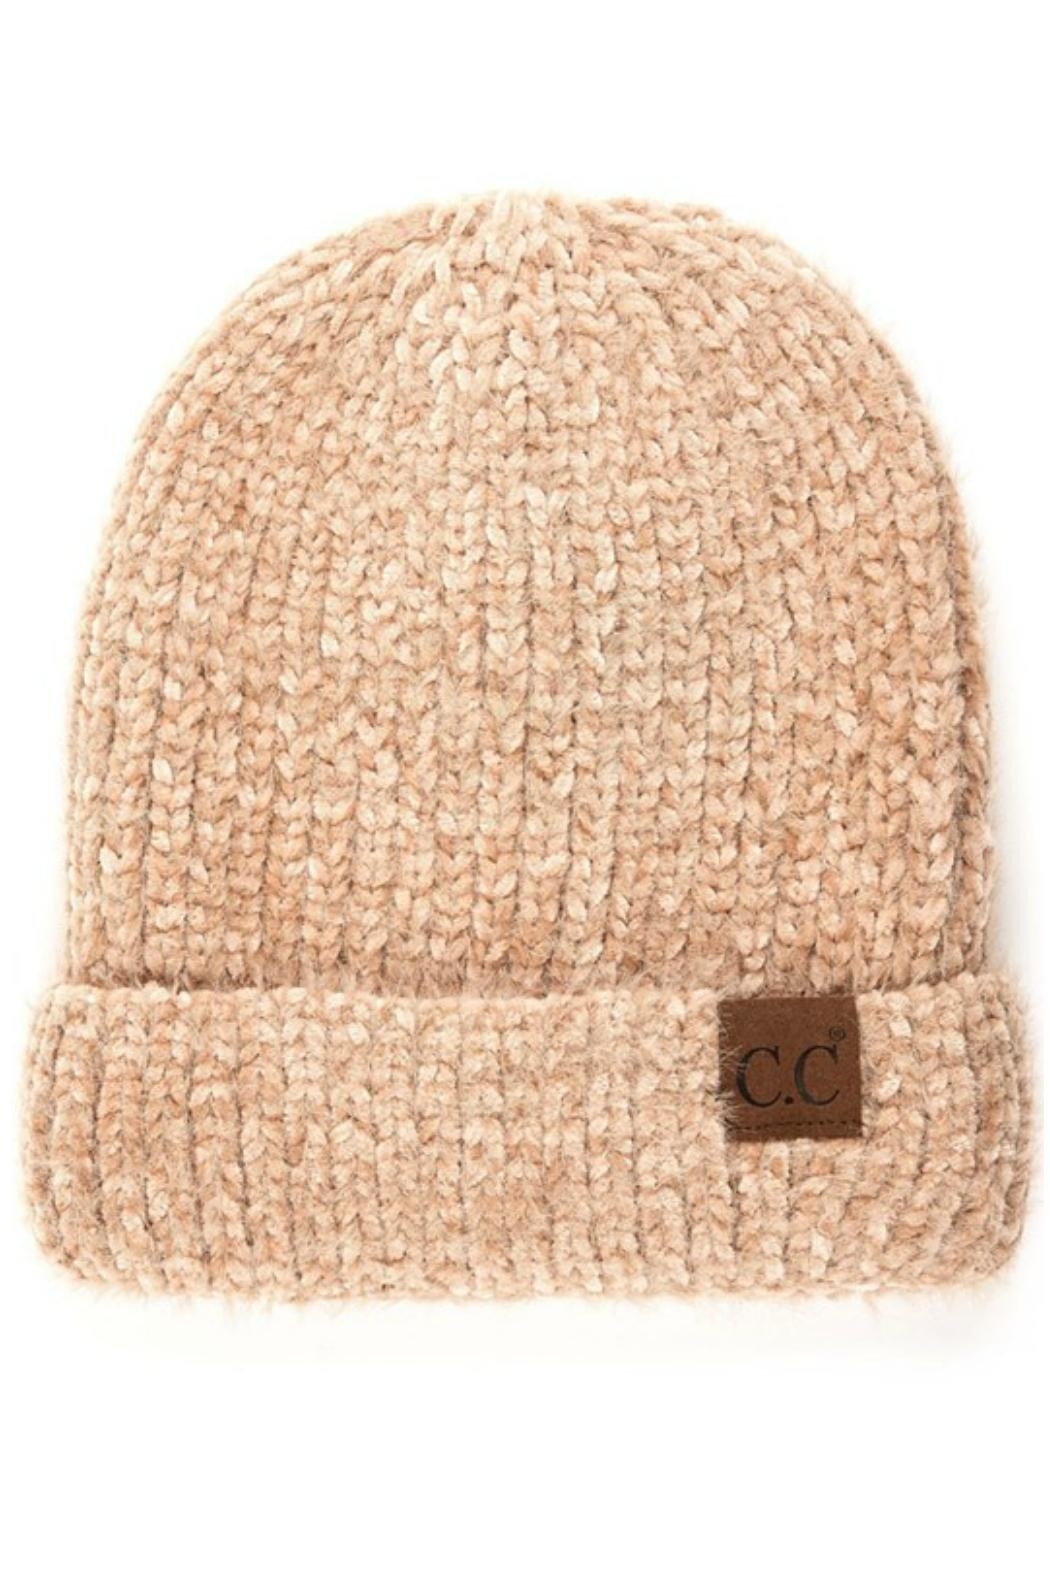 b677d91646b CC Beanie Taupe Chenille Beanie from California by Apricot Lane ...